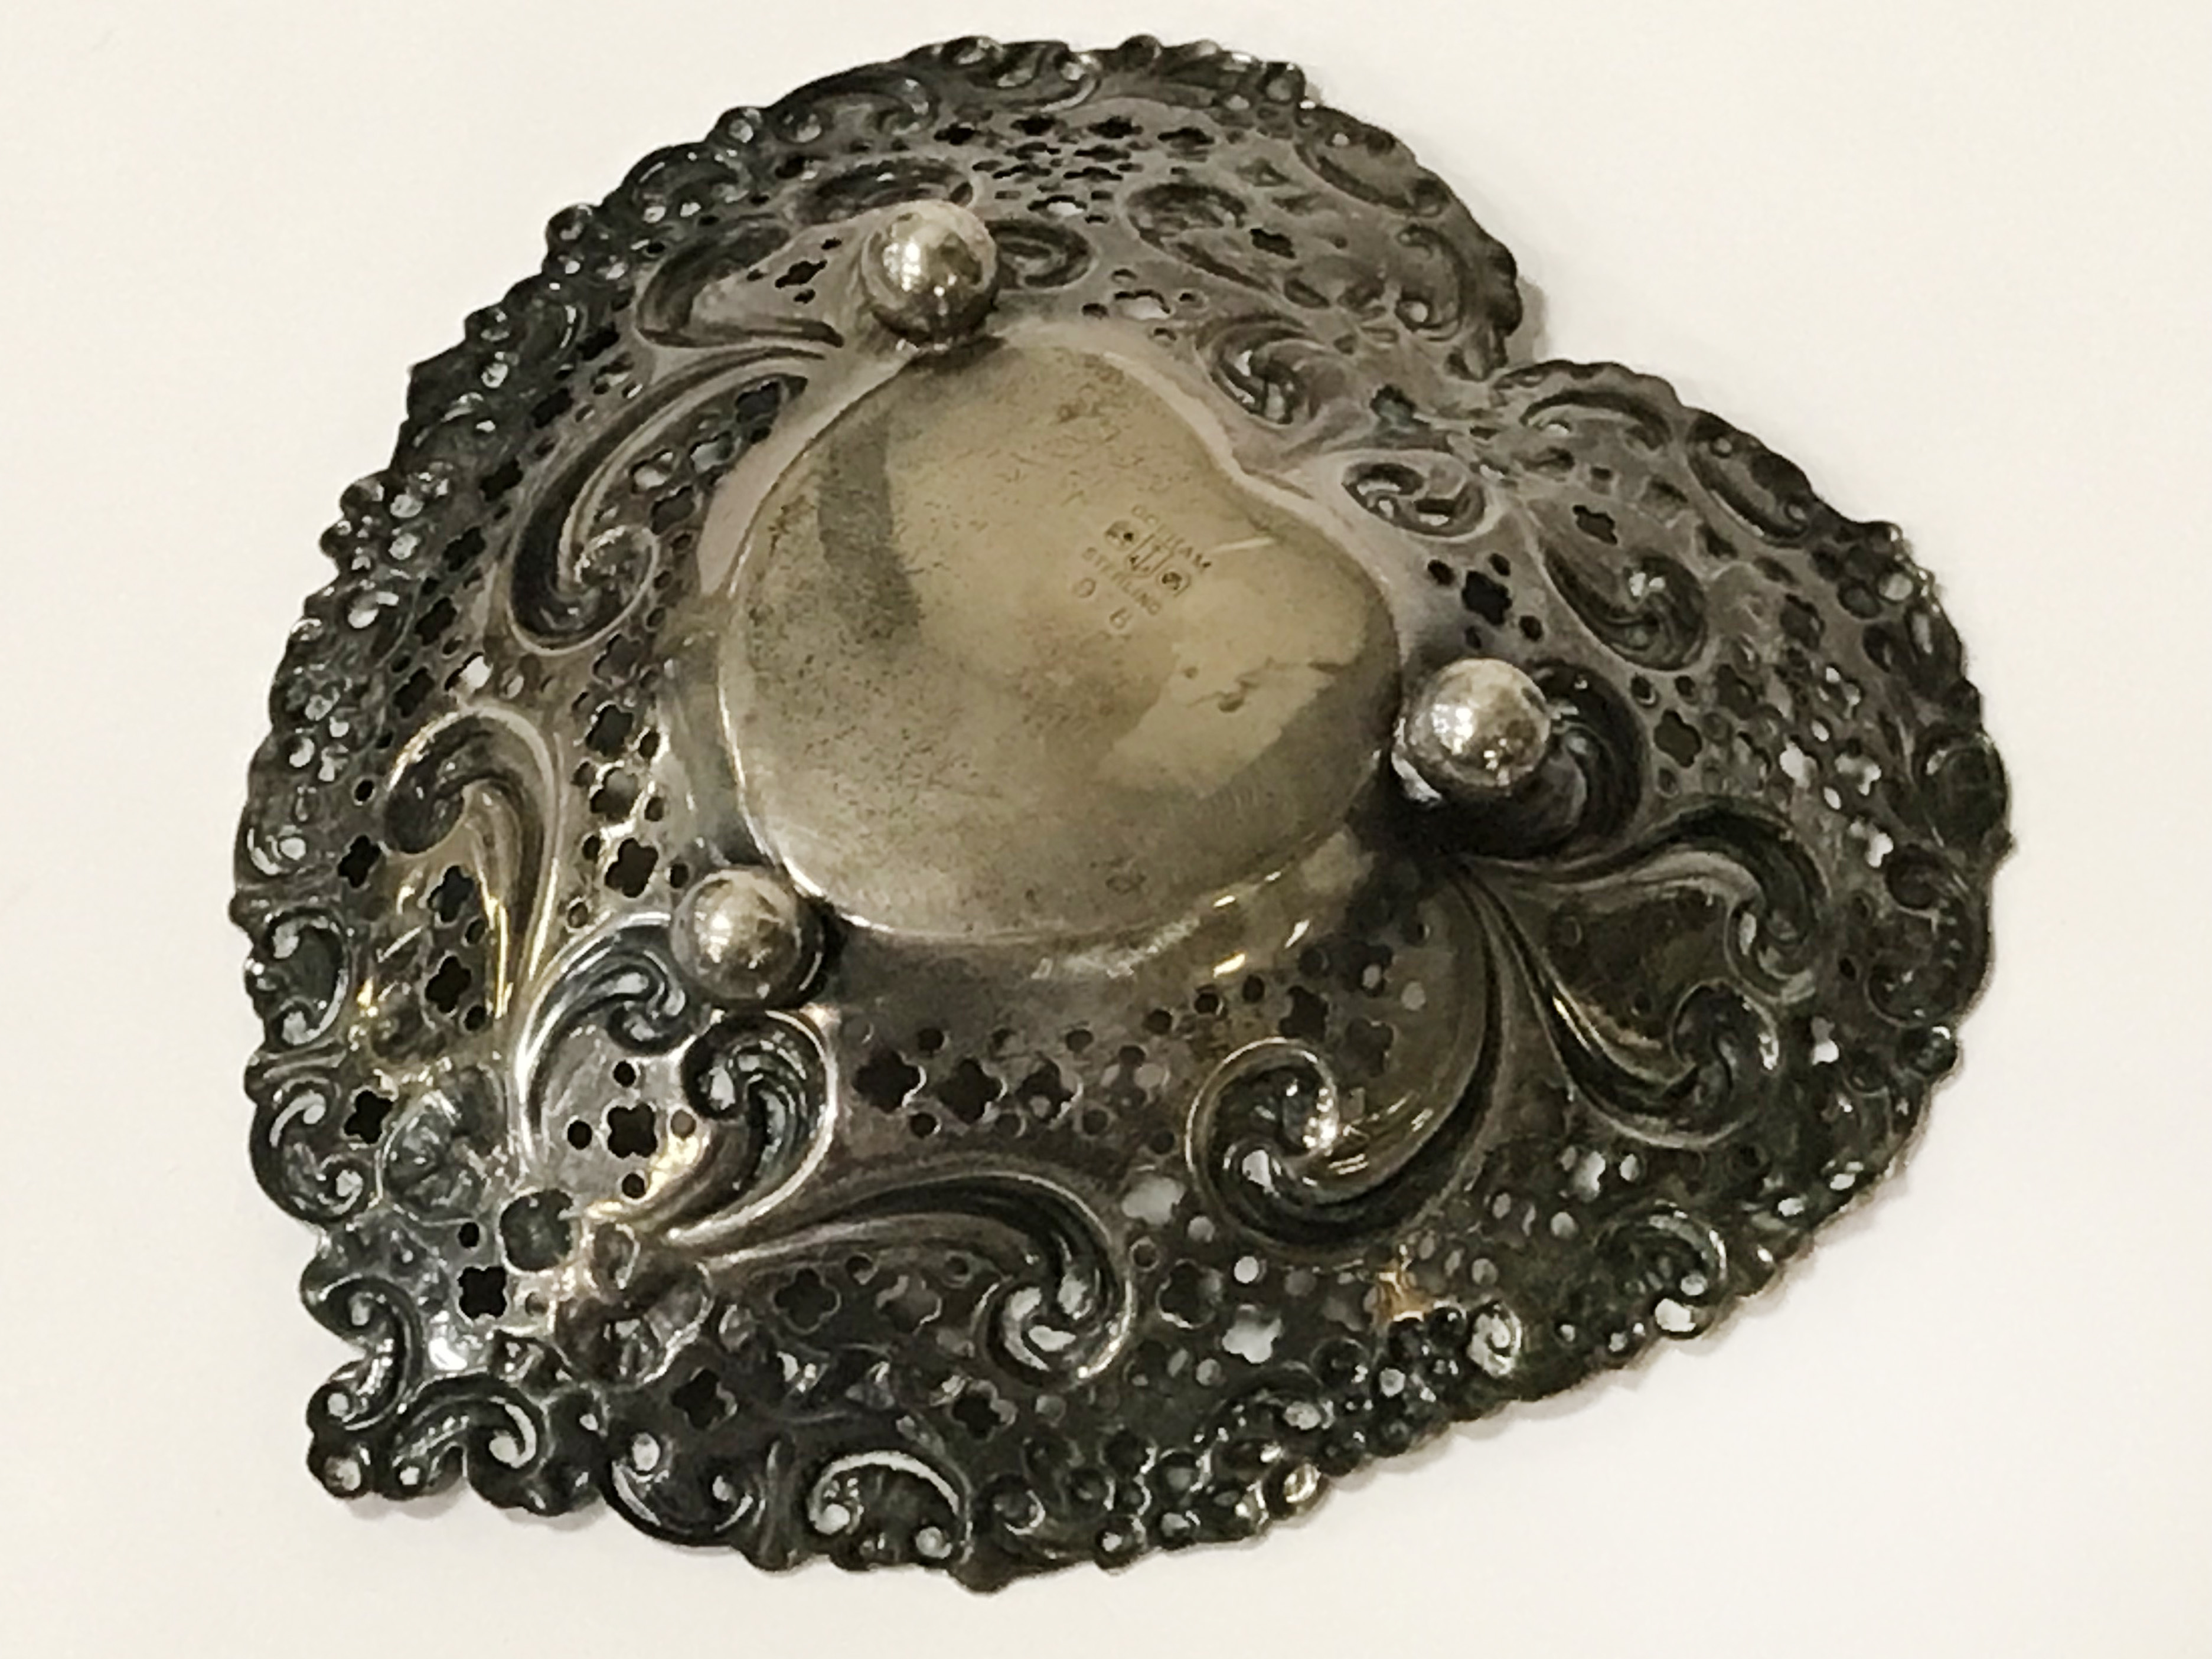 GORHAM STERLING SILVER HEART DISH - 13CMS - Image 3 of 4